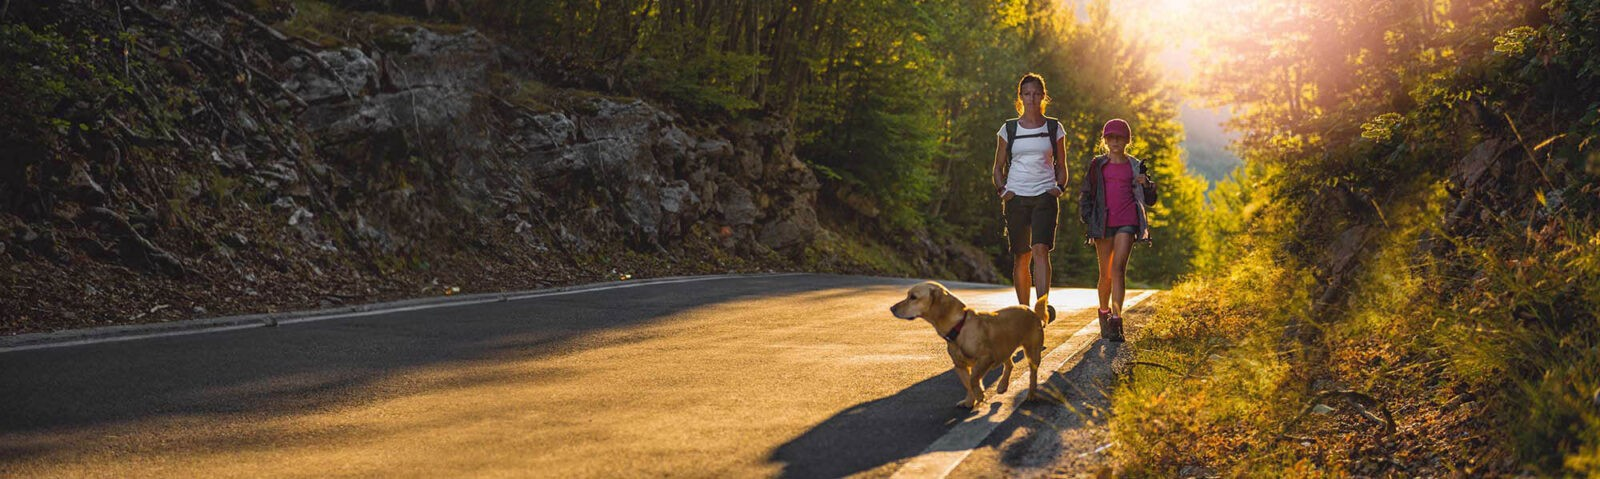 Mother and daughter walking by a roadway with a dog